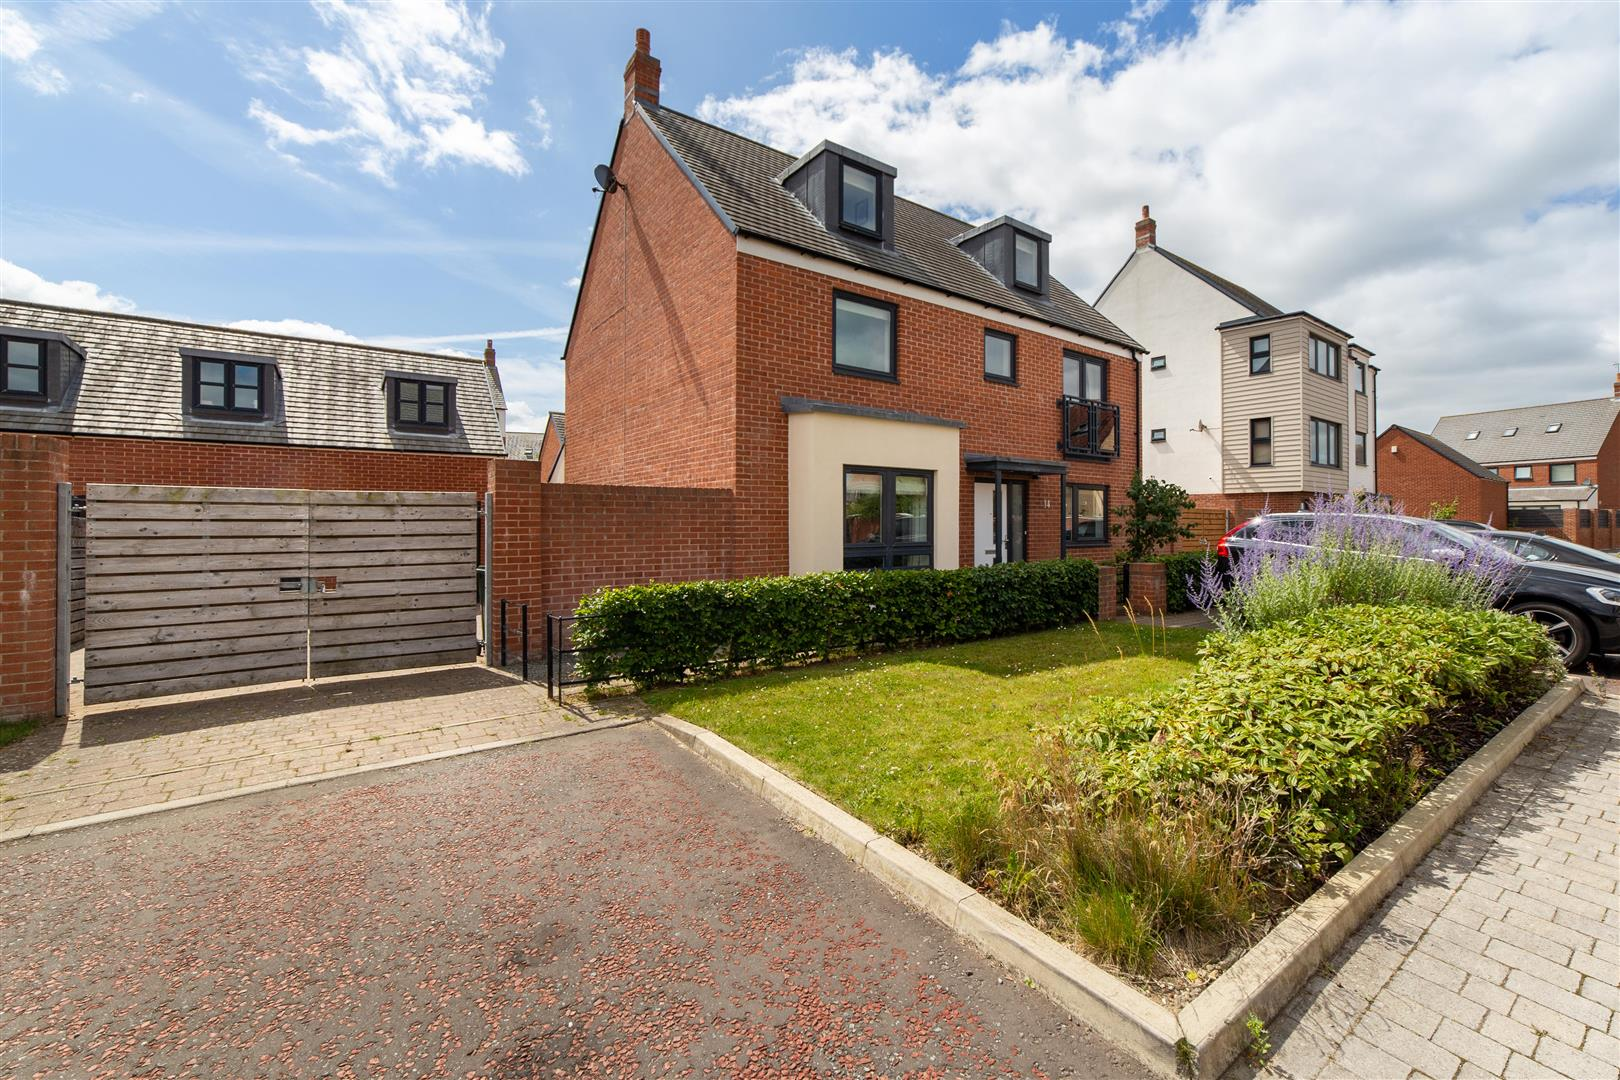 5 bed detached house for sale in Newcastle Upon Tyne, NE13 9AG  - Property Image 1